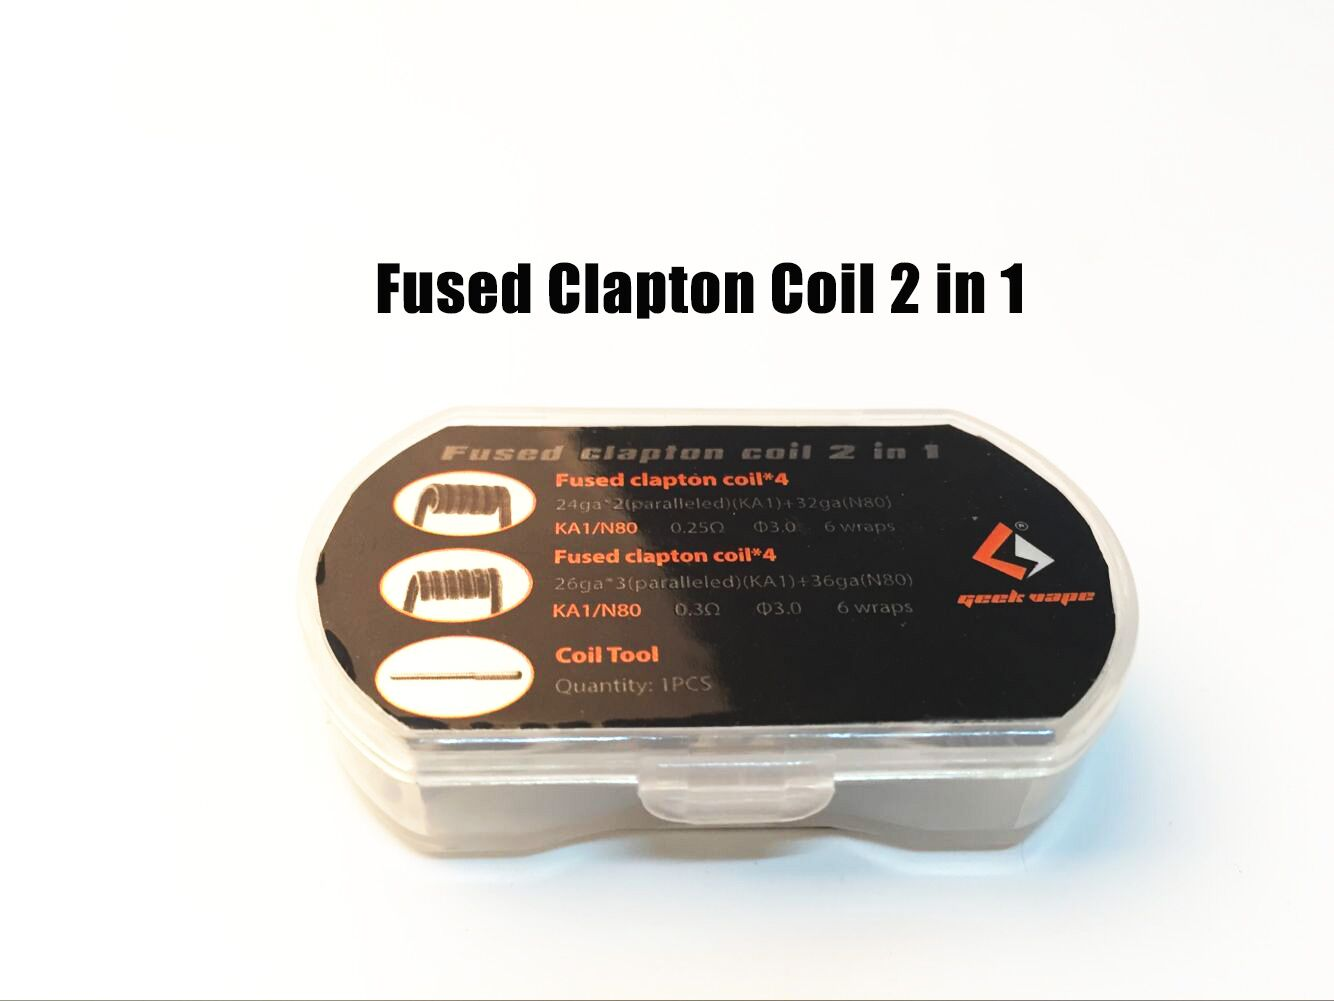 Geekvape Fused Clapton Coil 2 in 1 Box Set